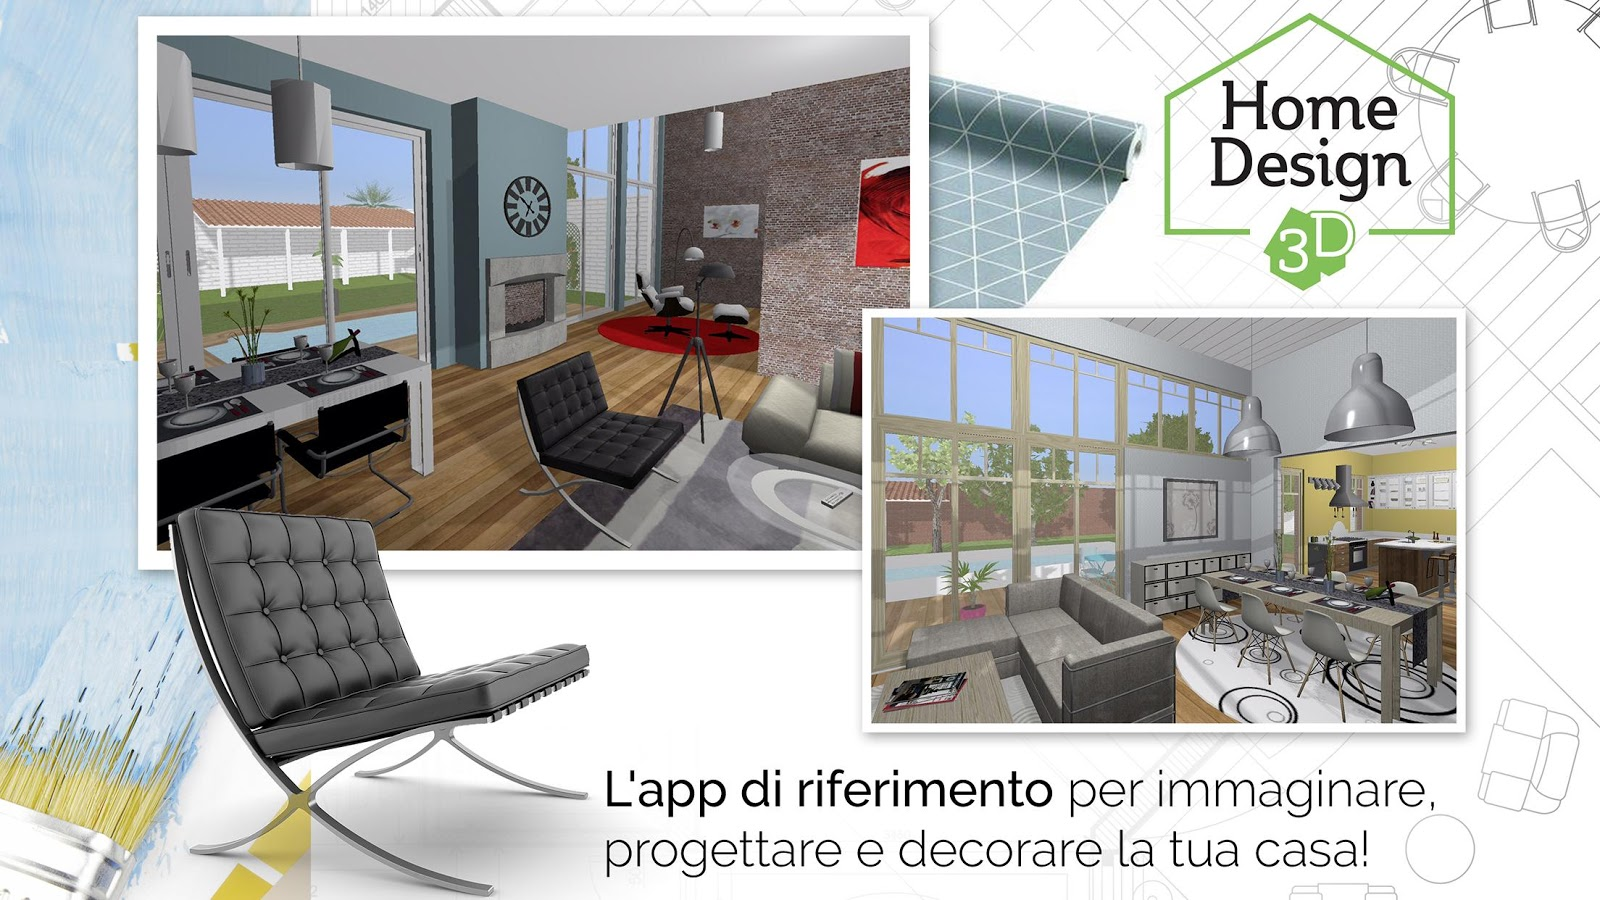 Home design 3d freemium app android su google play for App per progettare